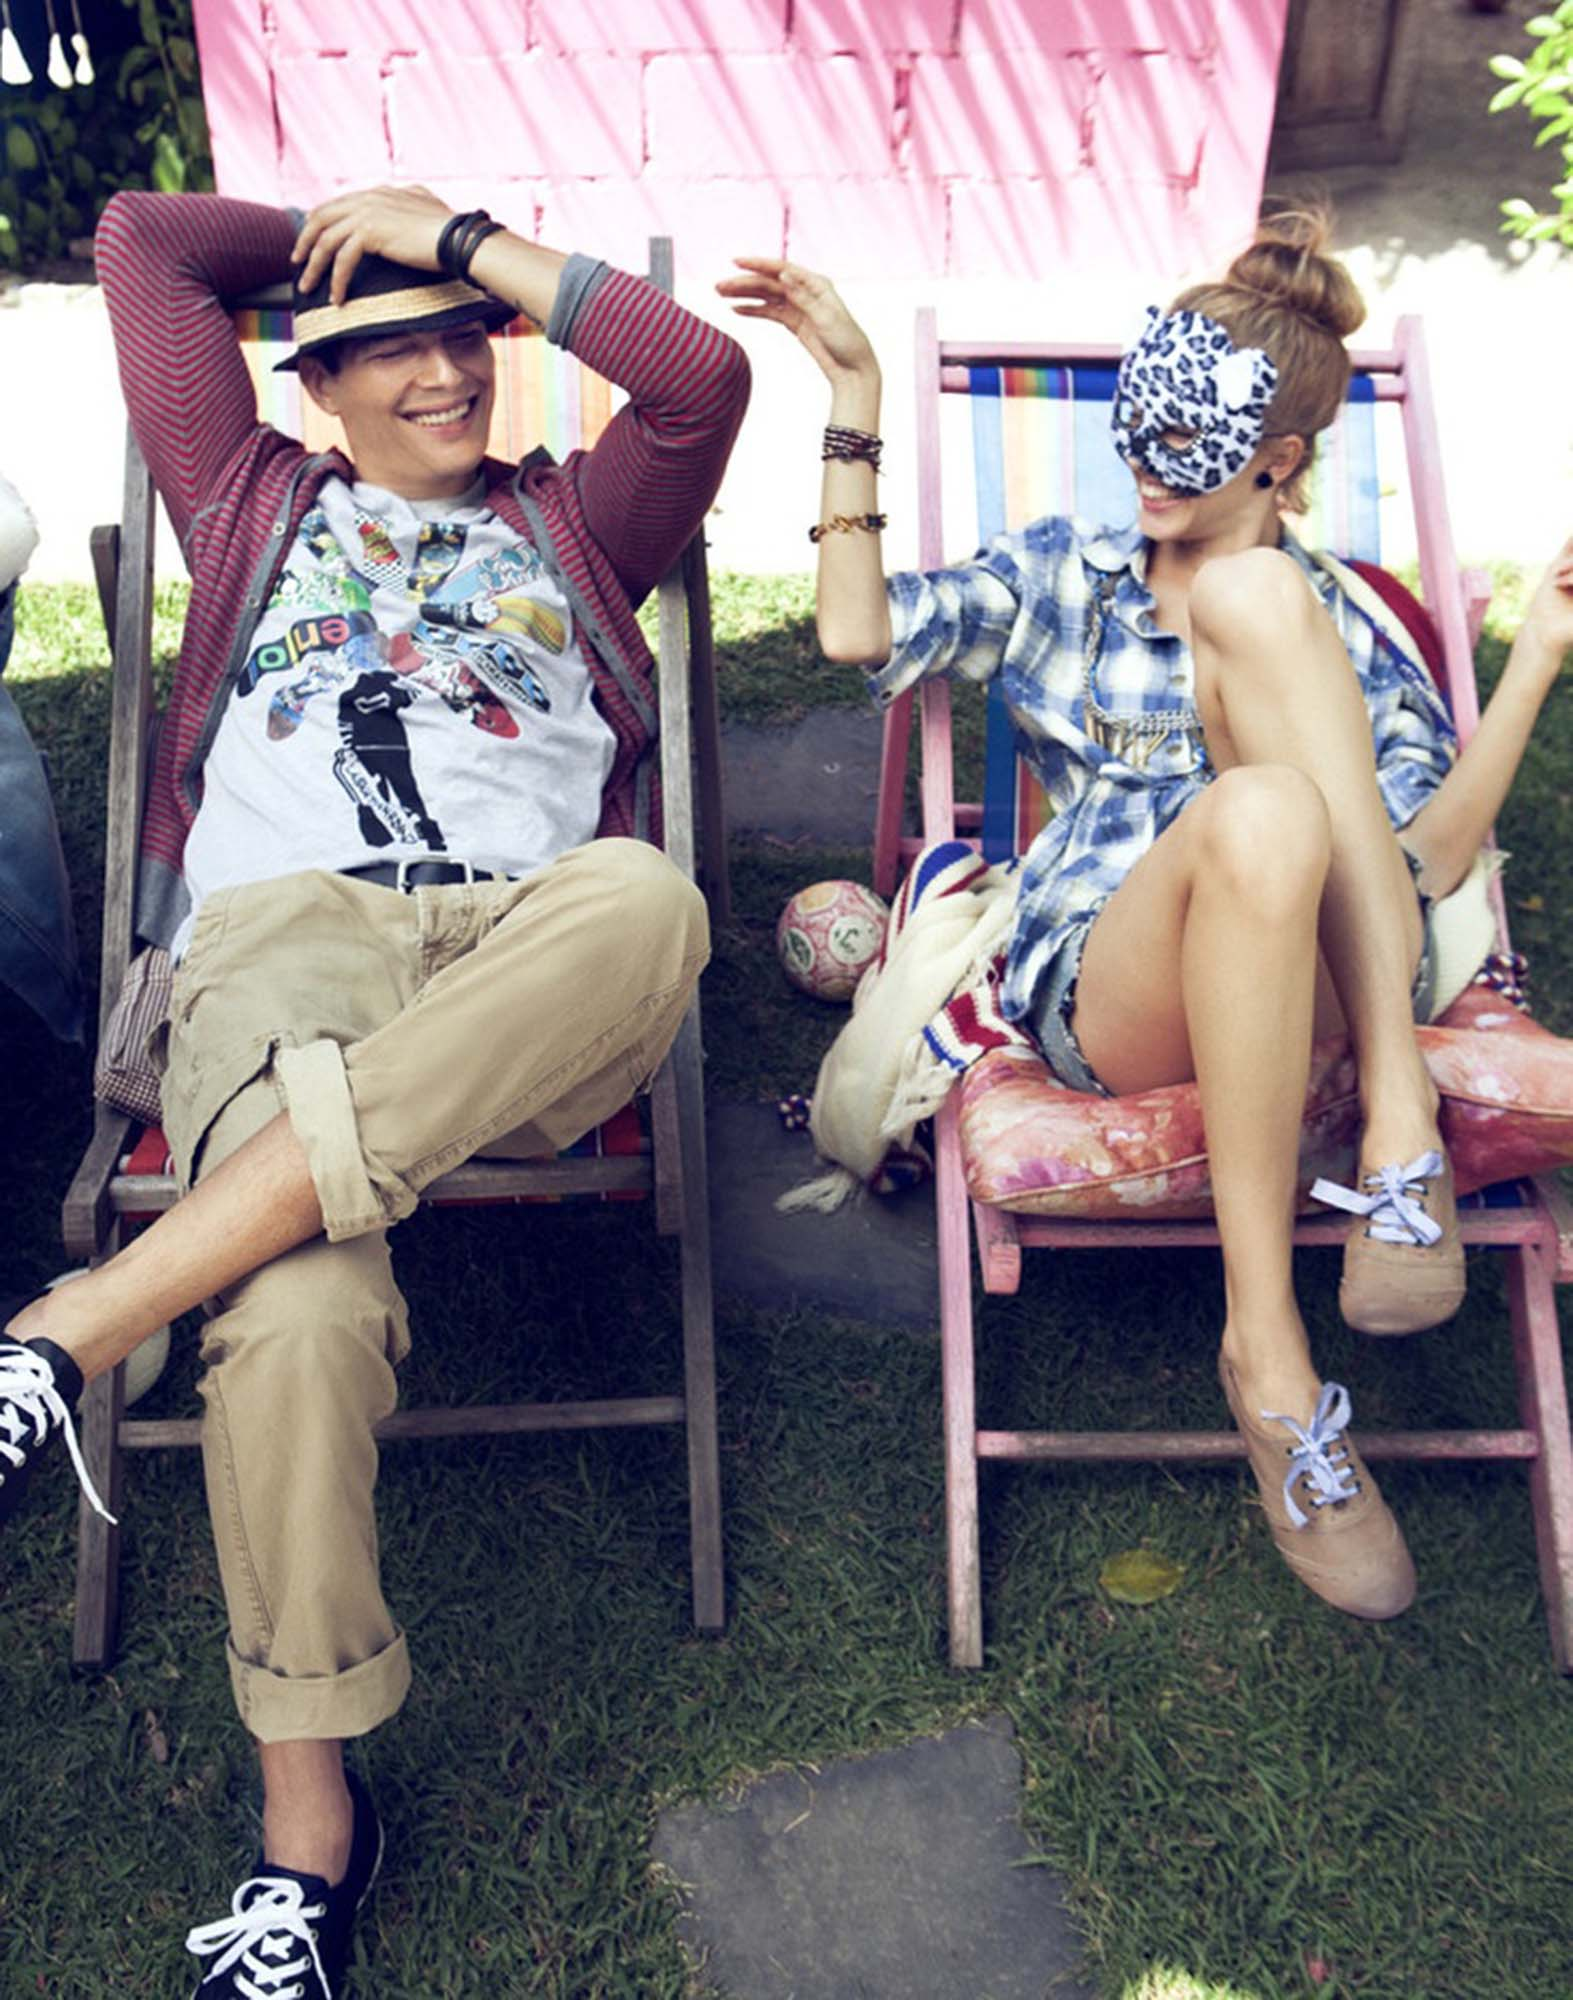 Man and woman sitting in lounge chairs in the yard